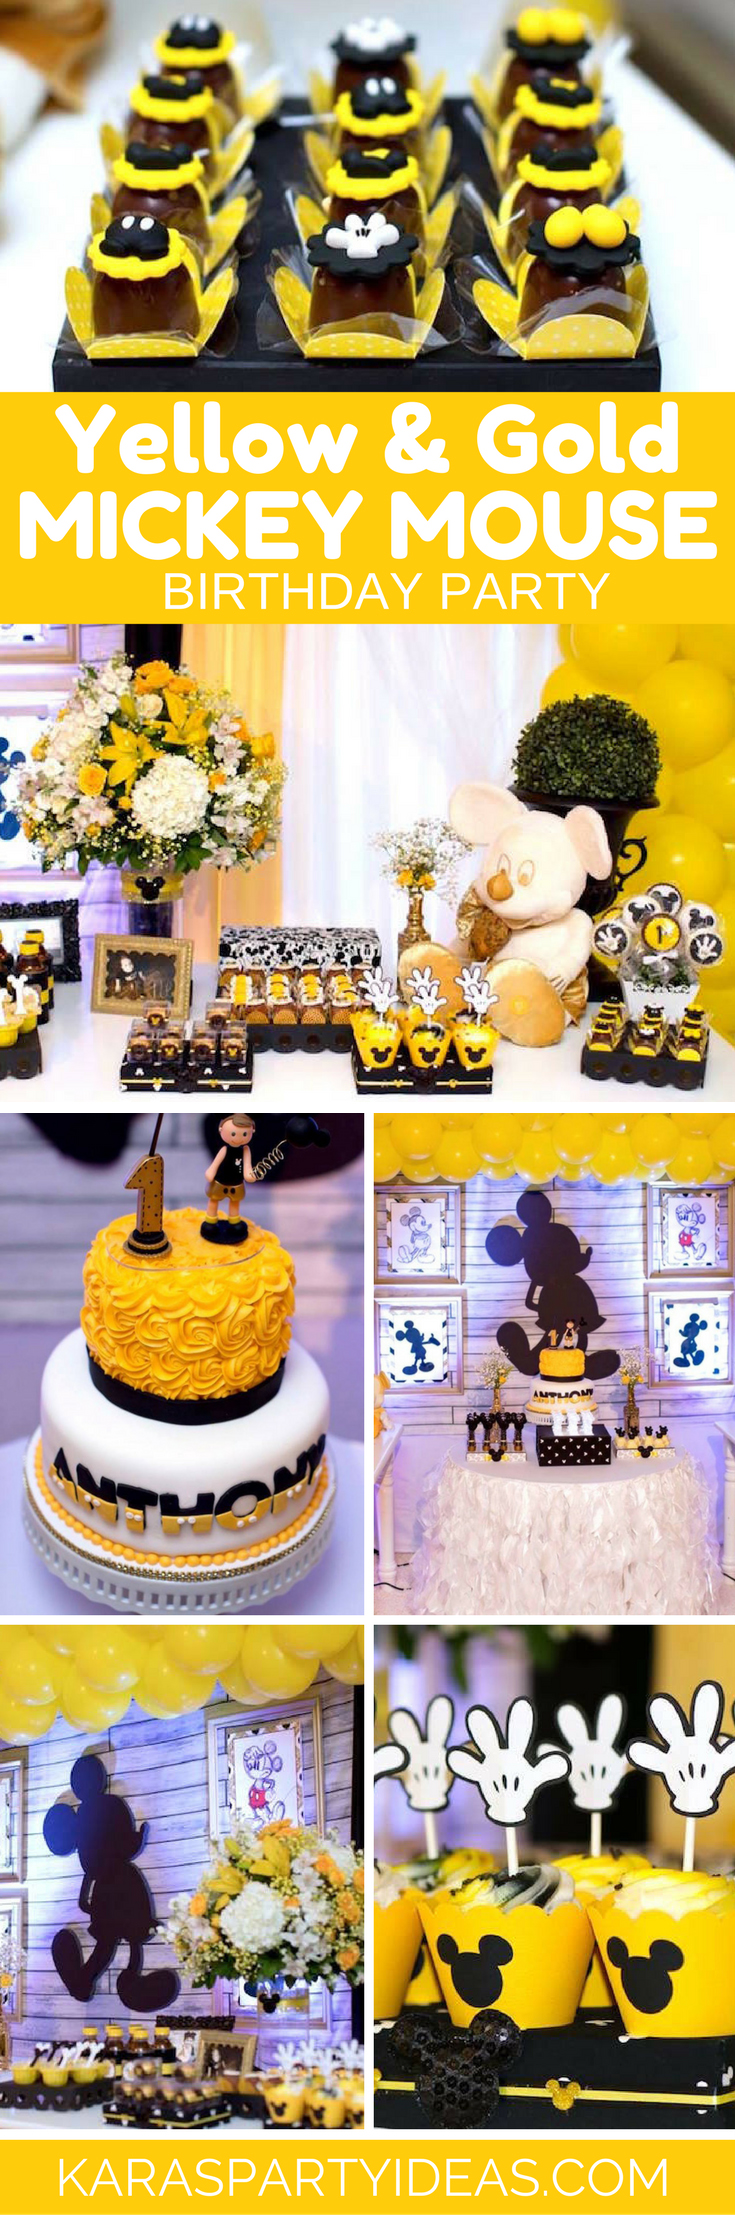 Yellow Gold Mickey Mouse Birthday Party via Kara's Party Ideas - KarasPartyIdeas.com